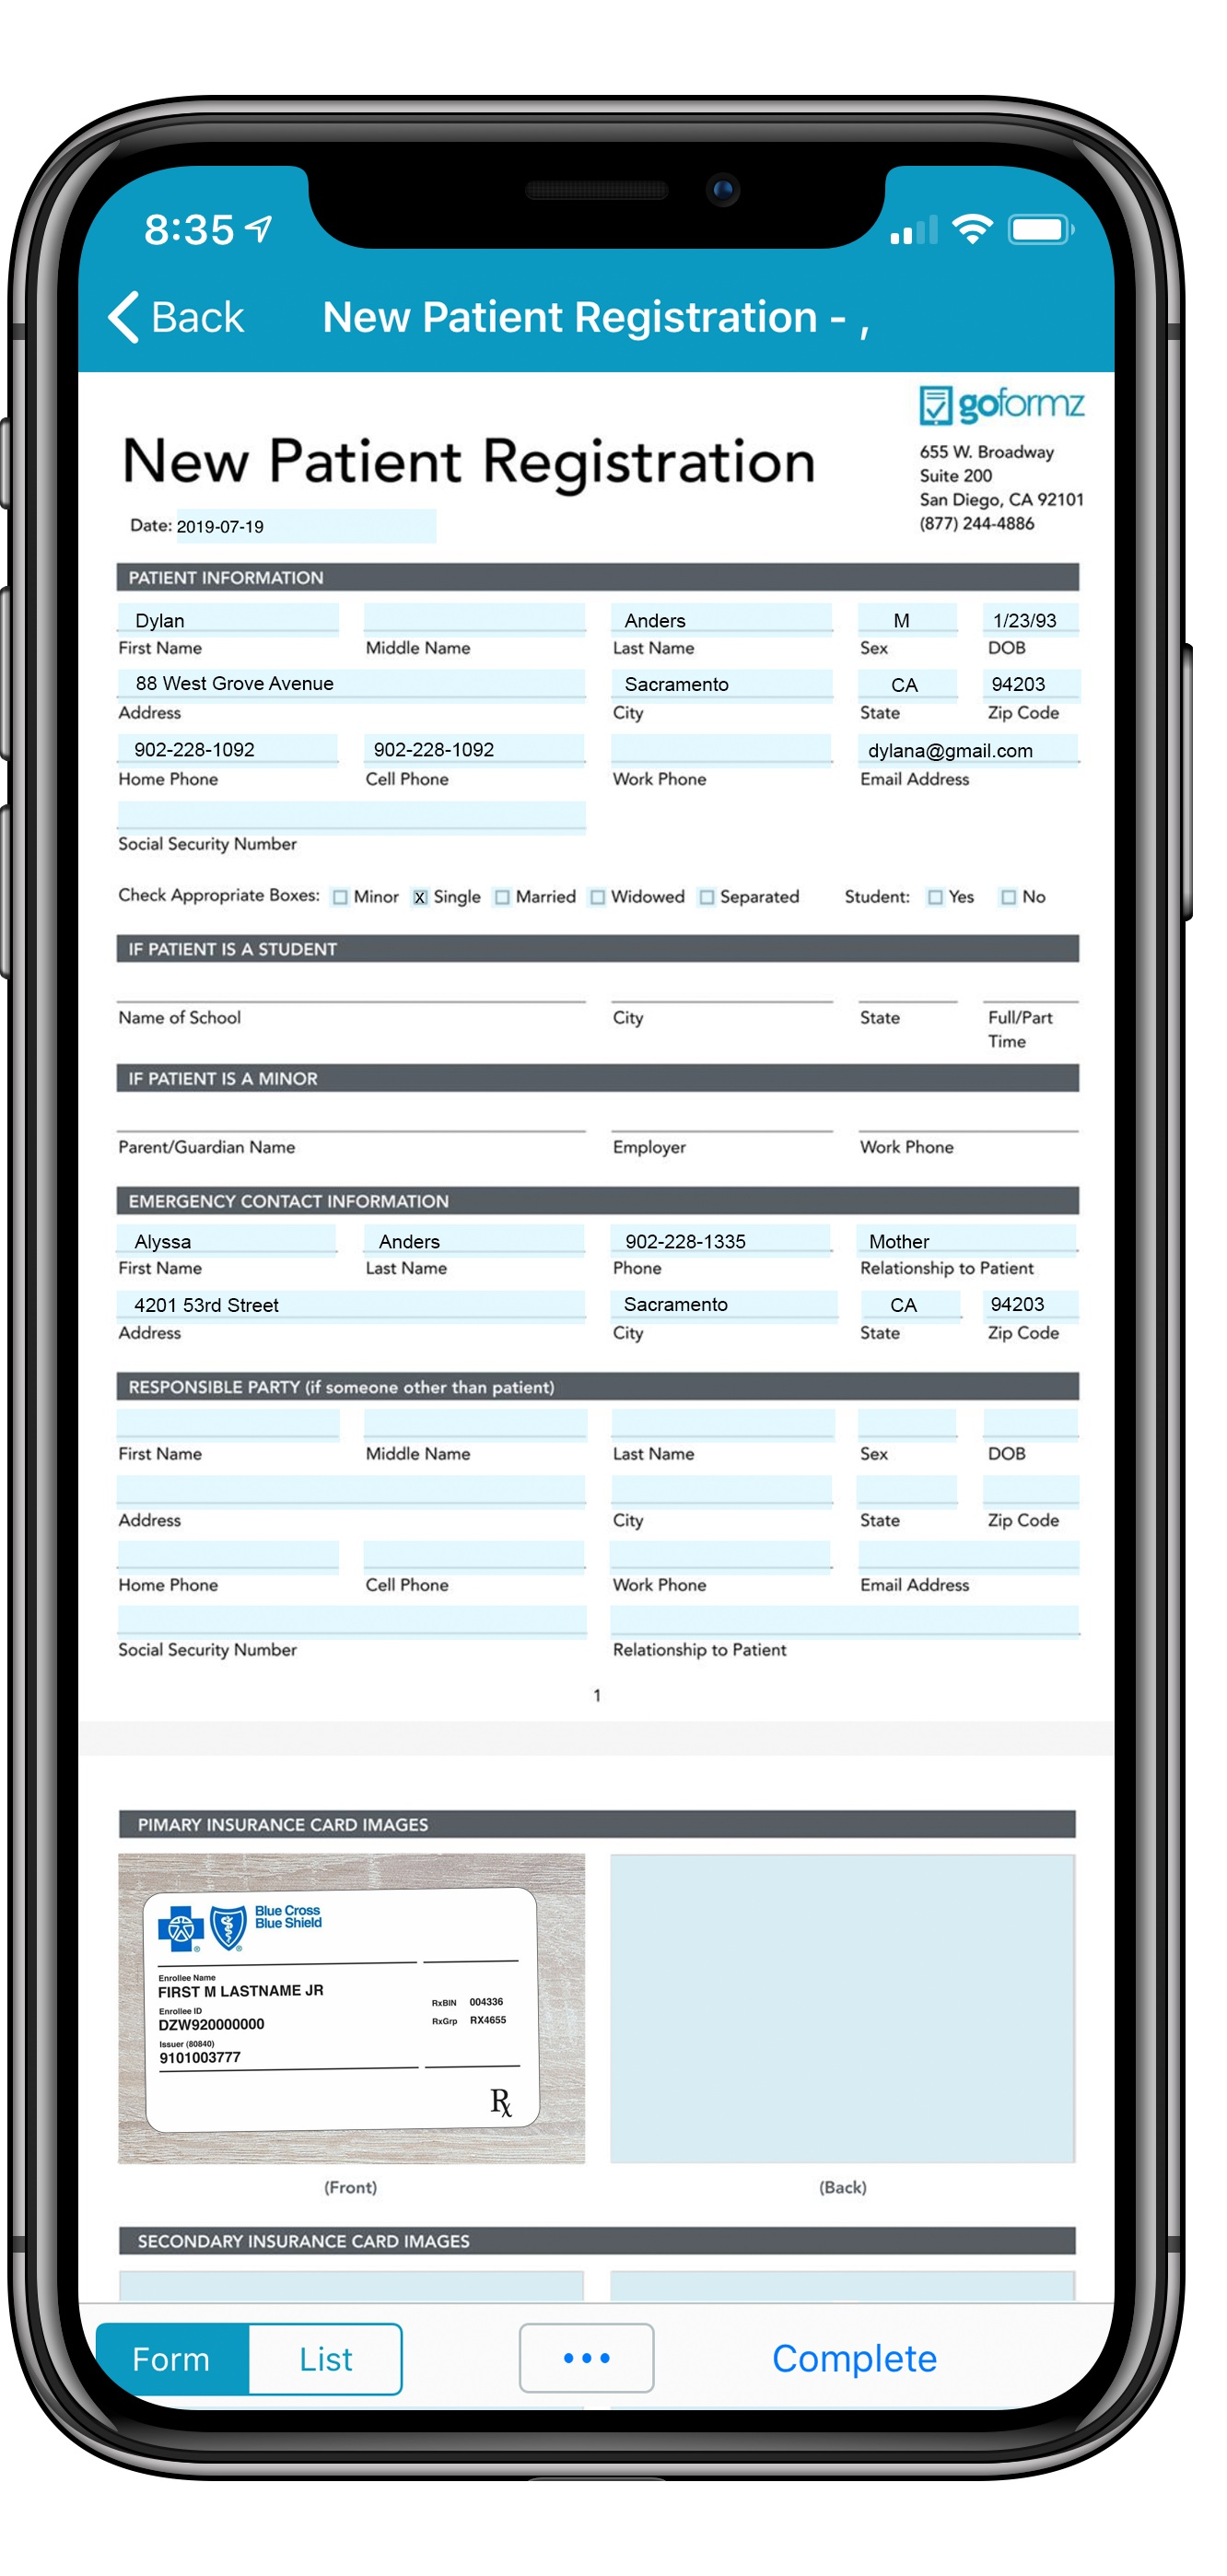 patient registration mobile form on iphone x showing data input into fields and insurance card image